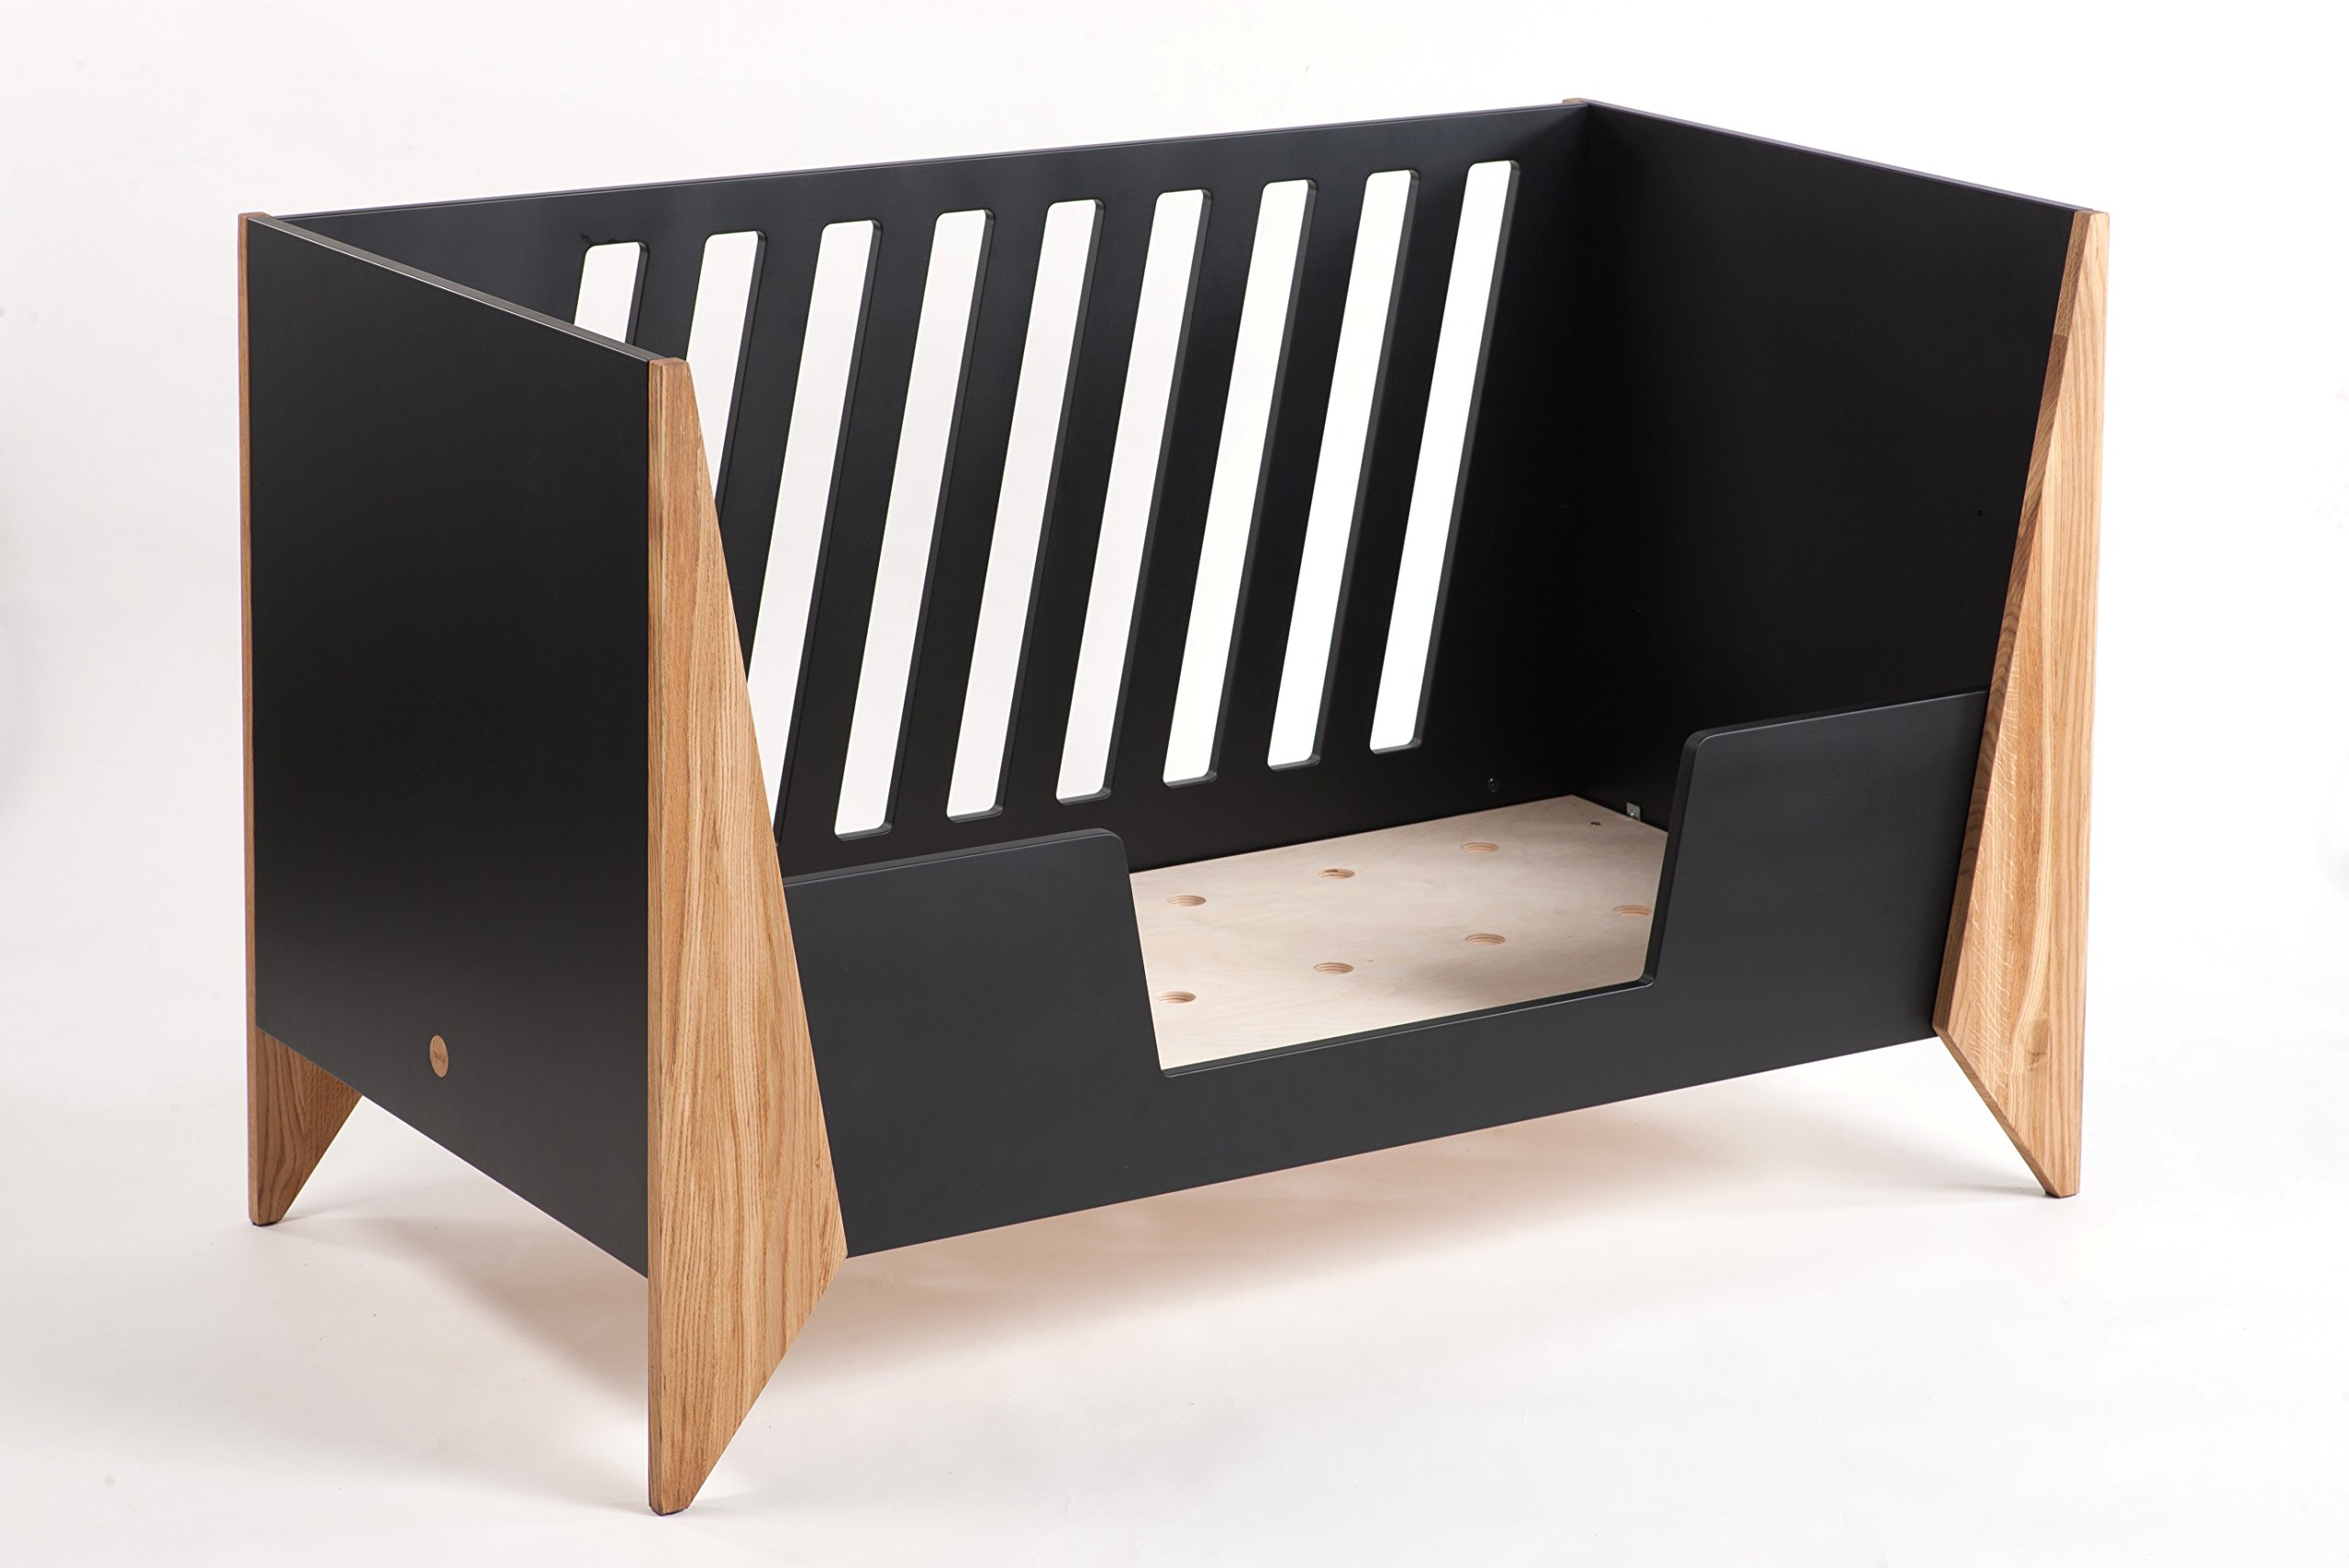 Nursery Cot (Black)  Made from high quality materials Mattress included Unique Scandinavian design 4